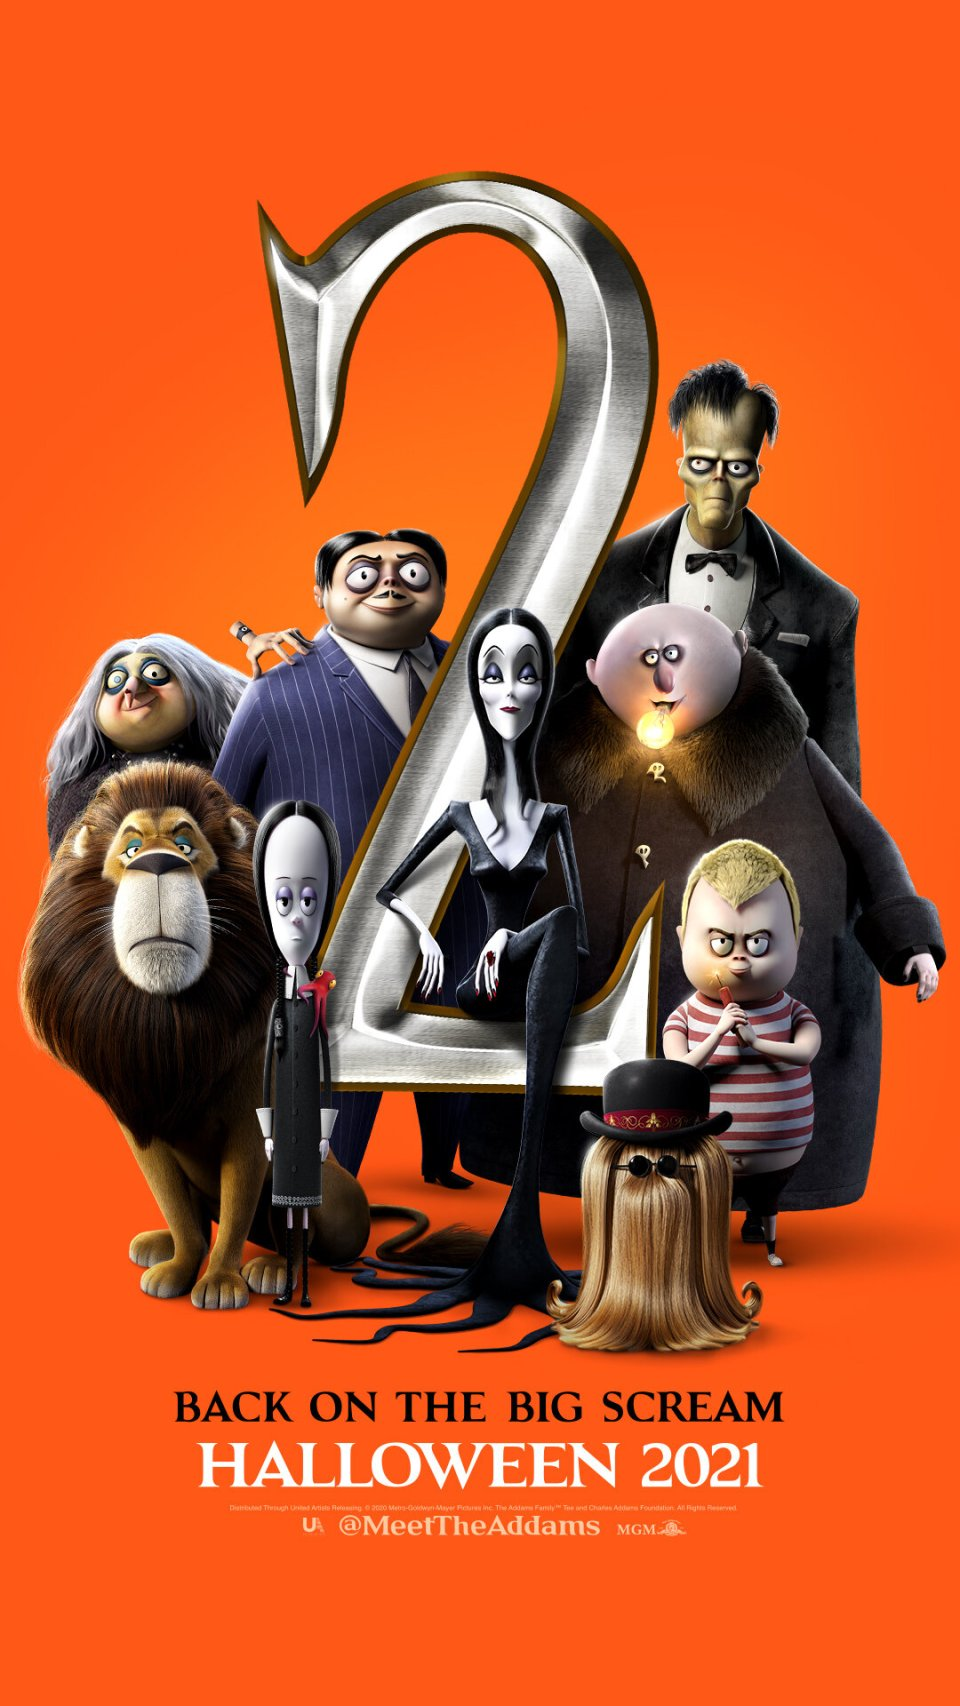 the-addams-family-2-promo-spot-release-date-and-bill-hader-joins-the-cast2.jpg